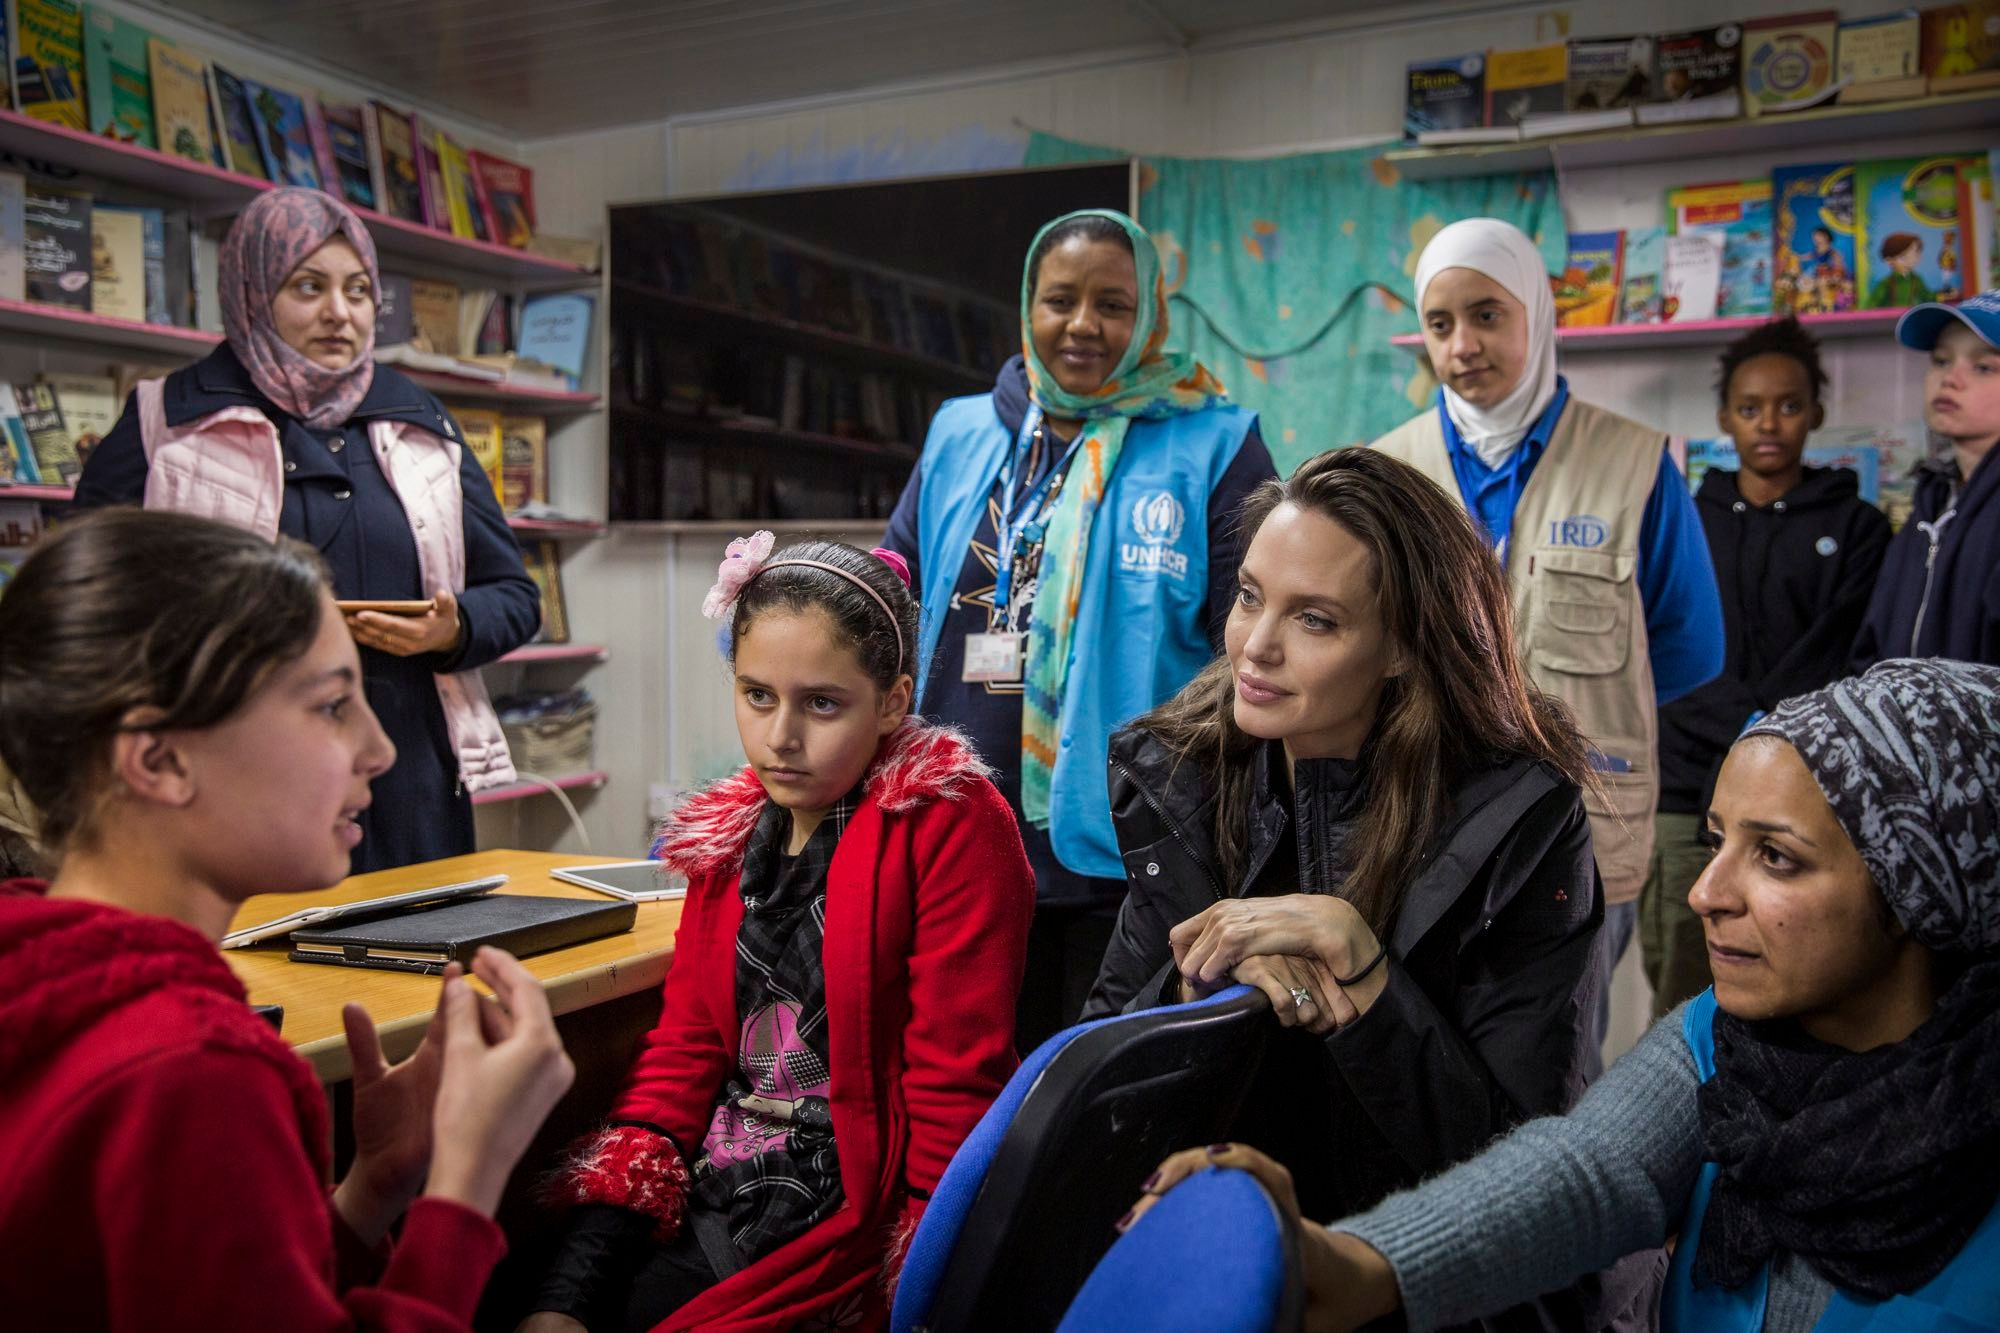 January 2018, Mafrq/Jordan: Meeting with young Syrians at Za'atari Camp; some 5.5 million Syrians have fled to neighboring countries so far. Picture: © UNHCR/ Andrew McConnell